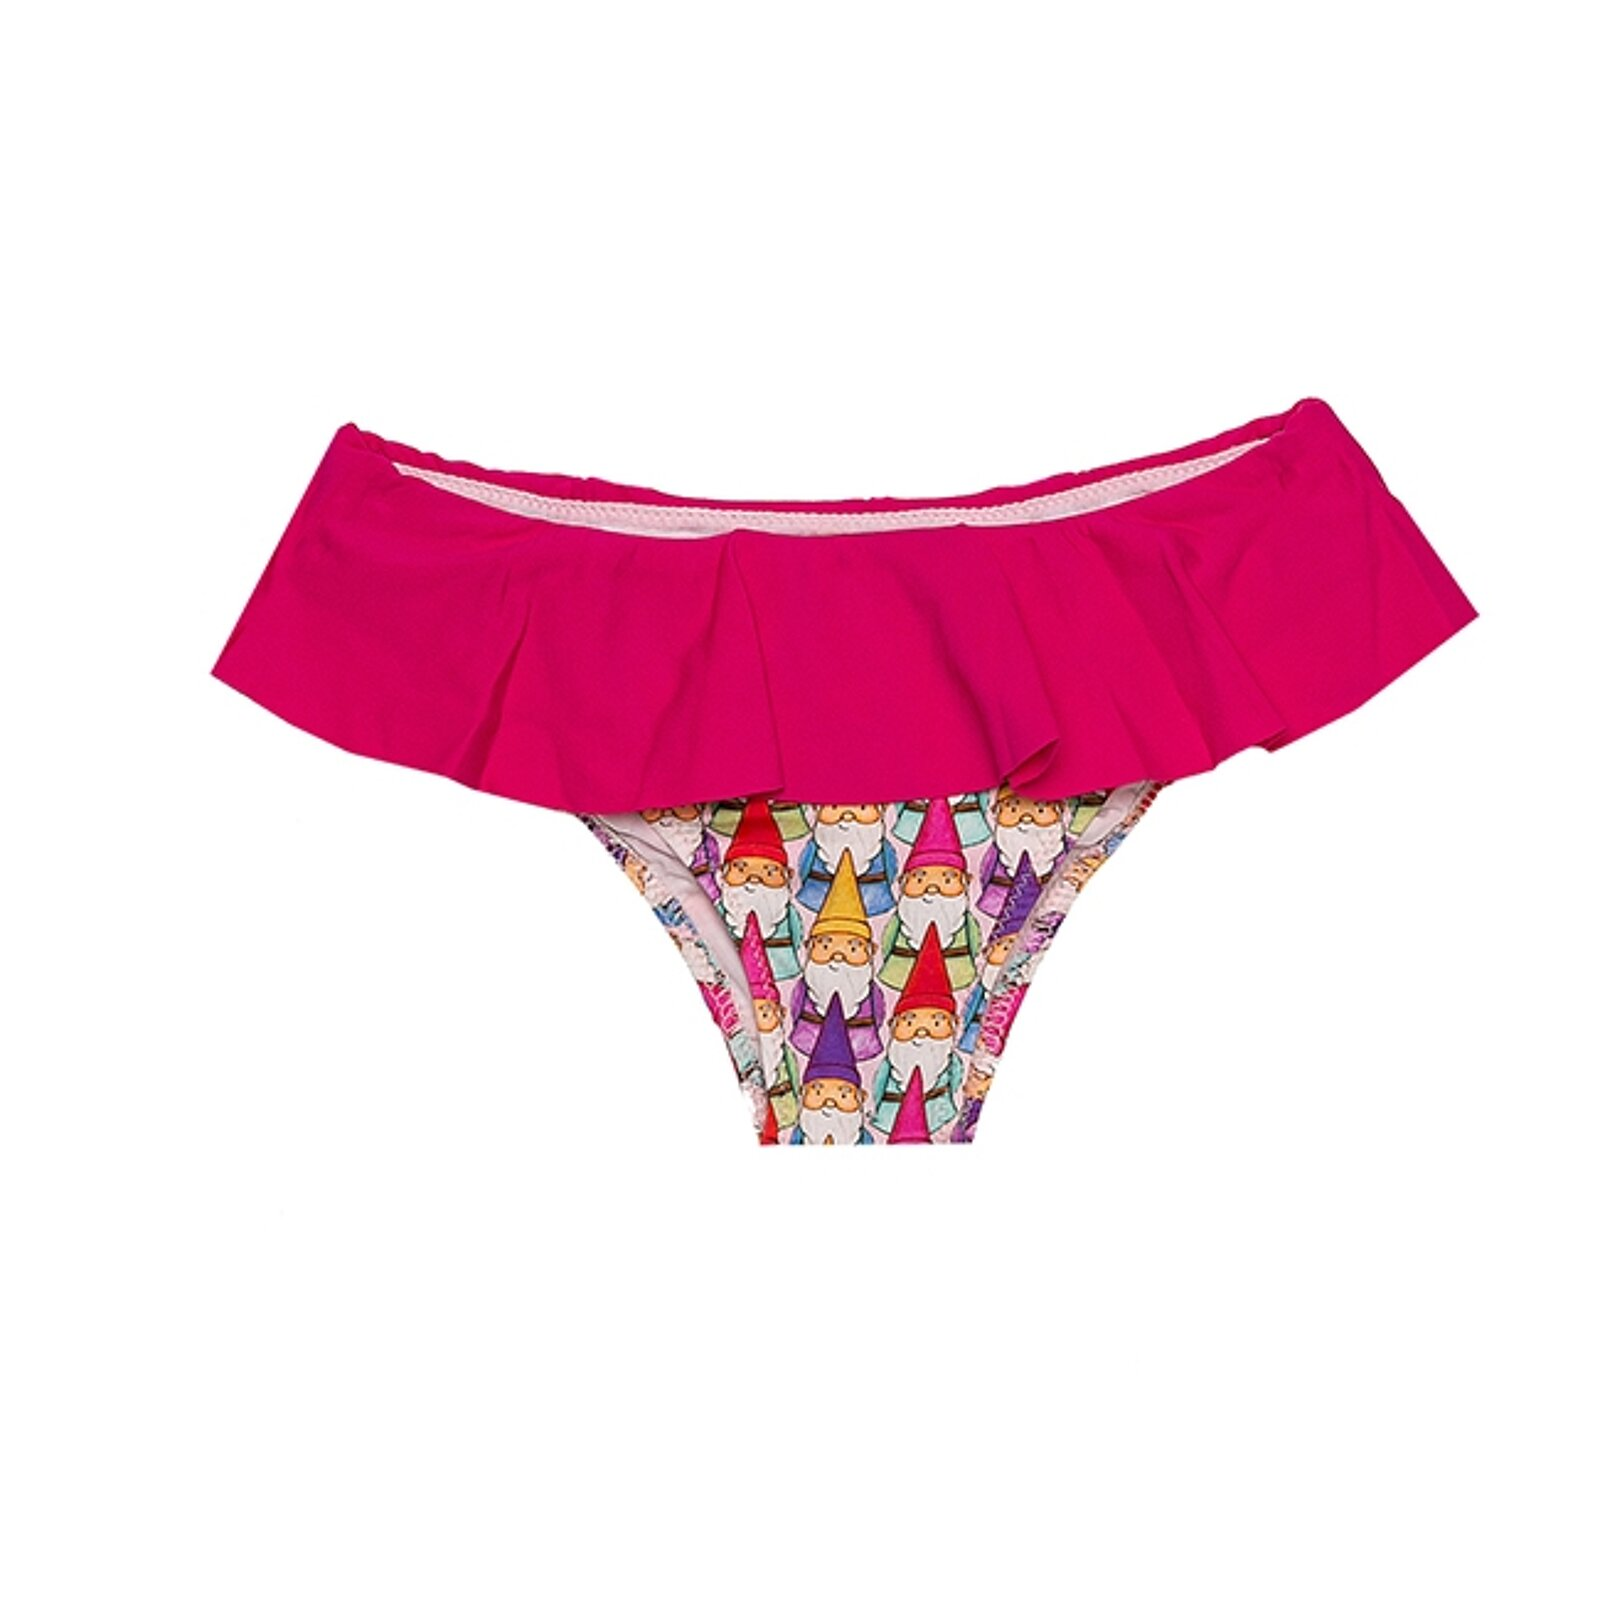 Slip Mare Bimba Con Balza Rosa Con Gnomi - MC2 Saint Barth Junior